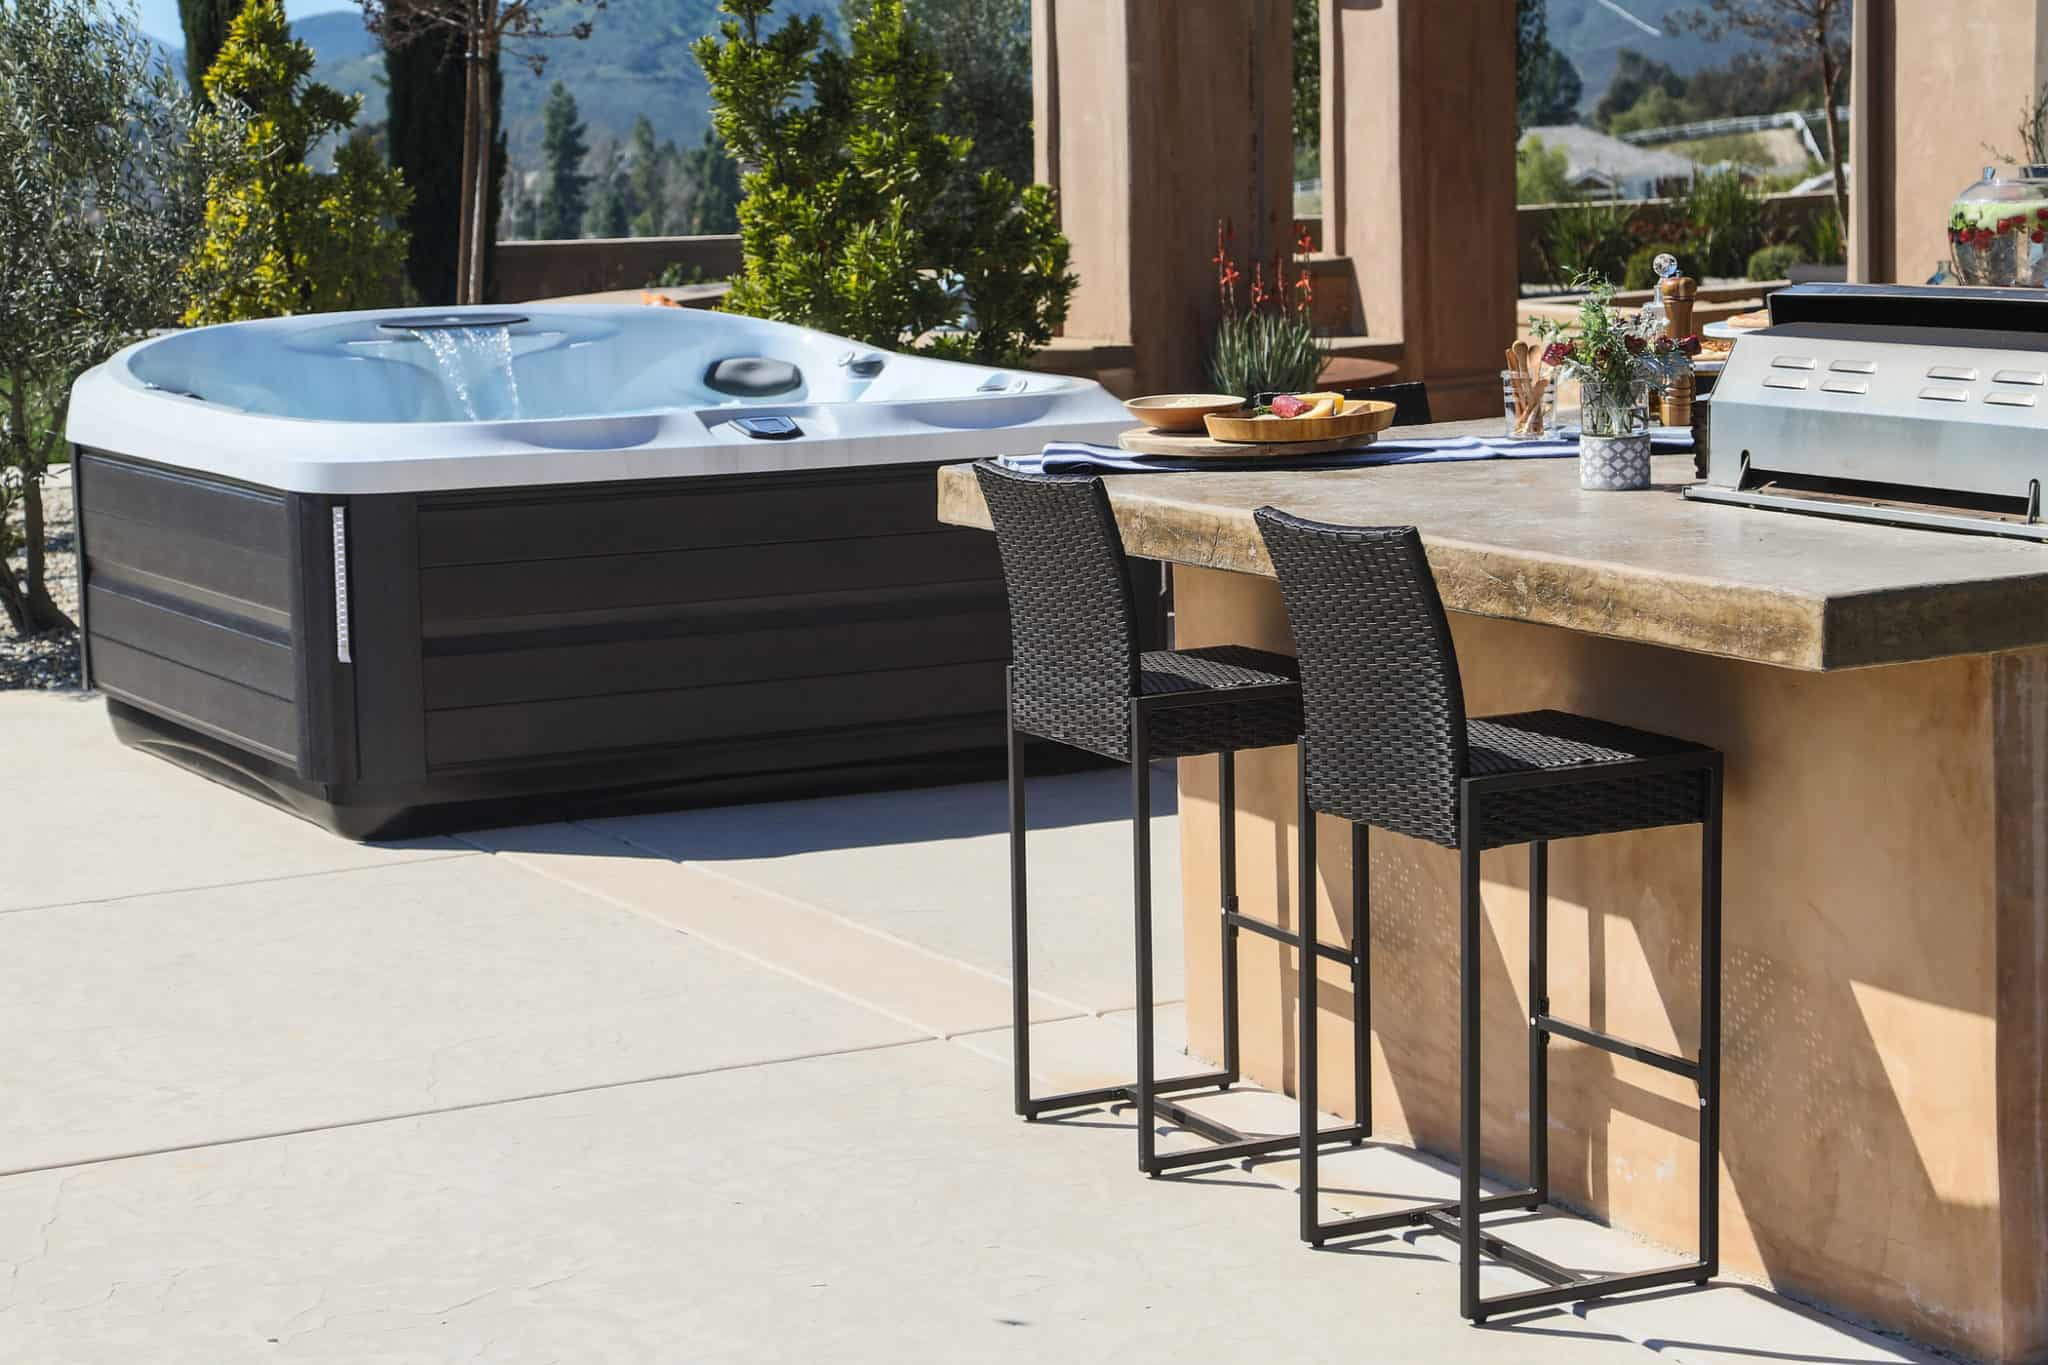 Outdoor hot tub installation on a patio.